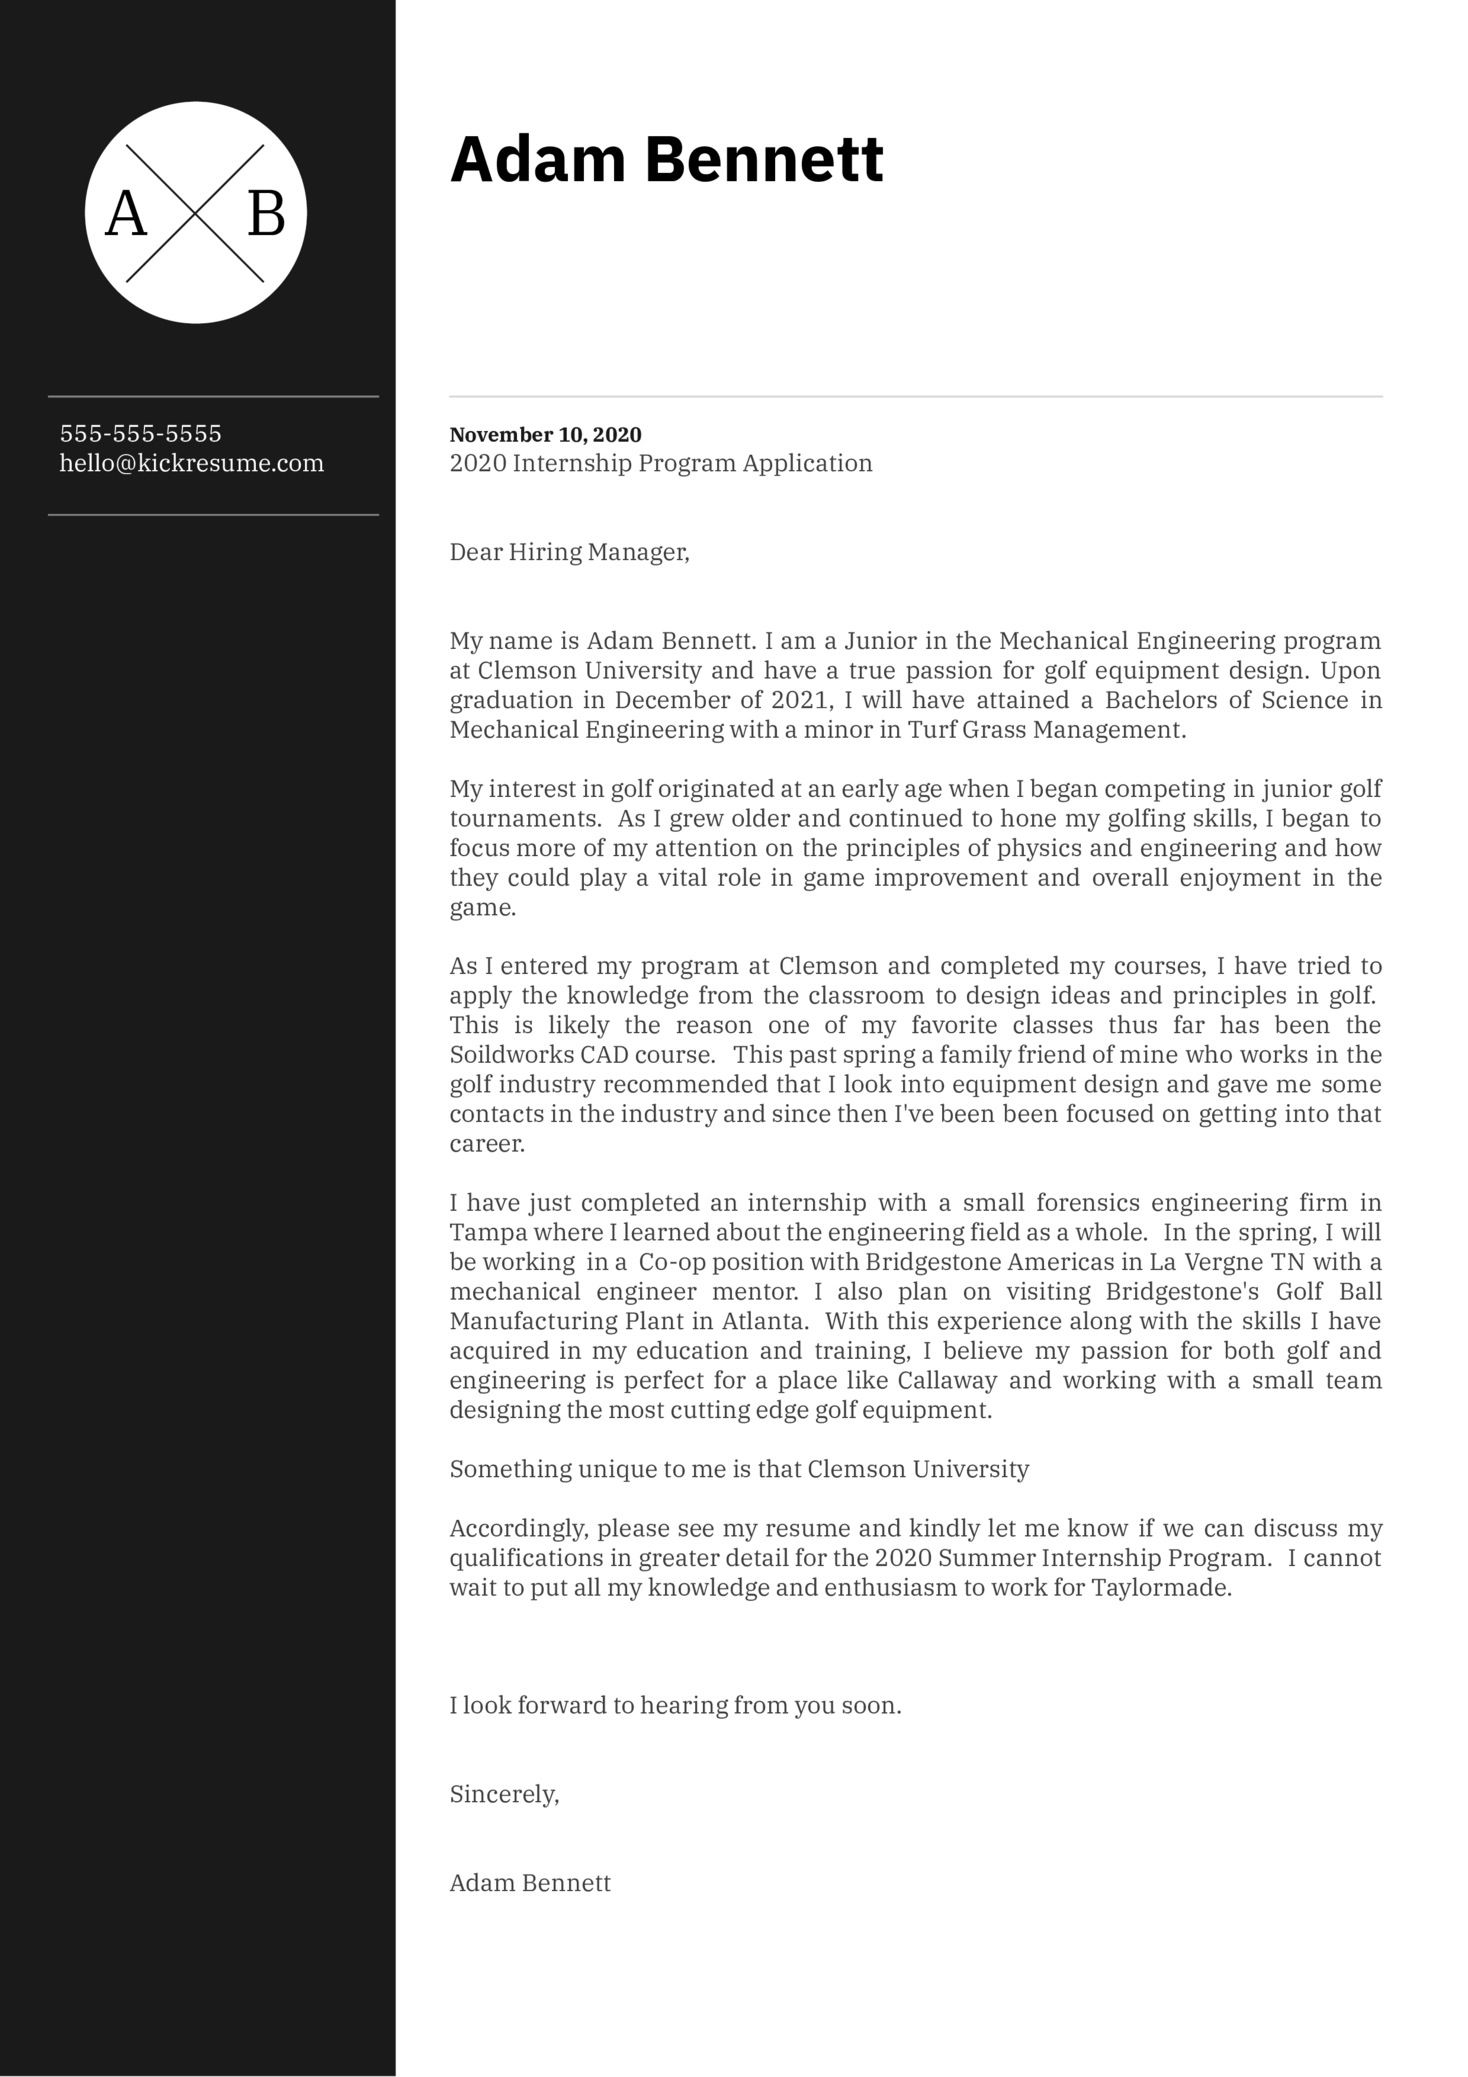 Mechanical Engineering Intern at TaylorMade Cover Letter Sample